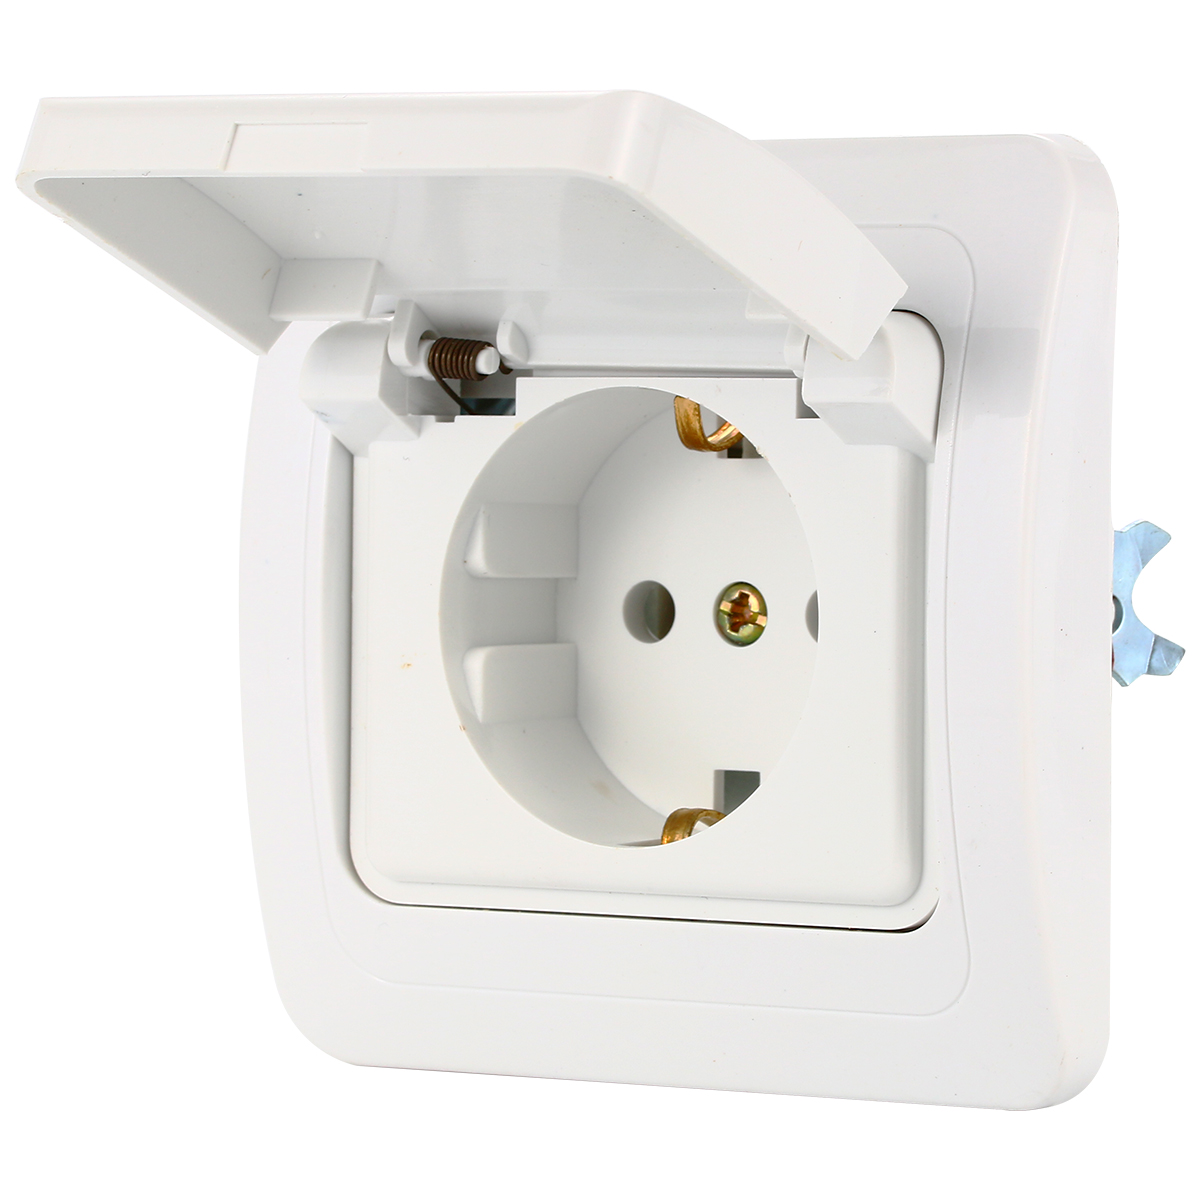 small resolution of germany european ac power socket 16a 250v korea wiring receptacle power outlet schuko bi132 on aliexpress com alibaba group